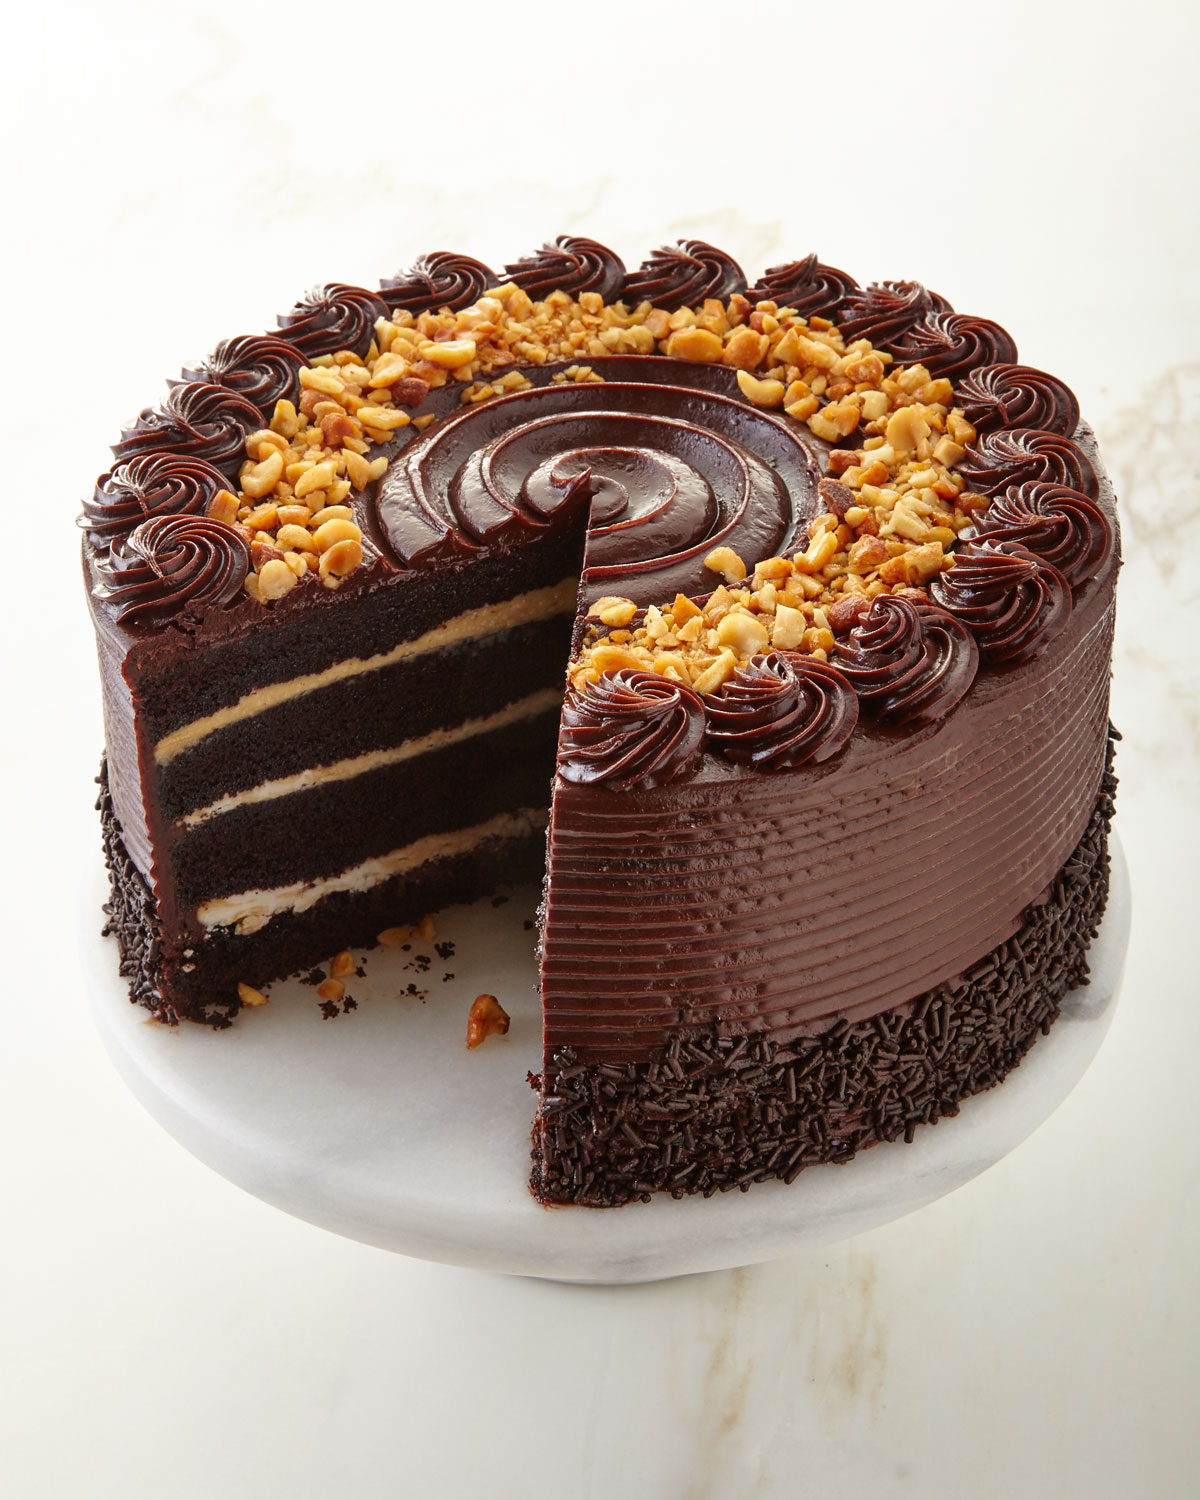 Frosted Art Bakery Chocolate Peanut Butter Cake